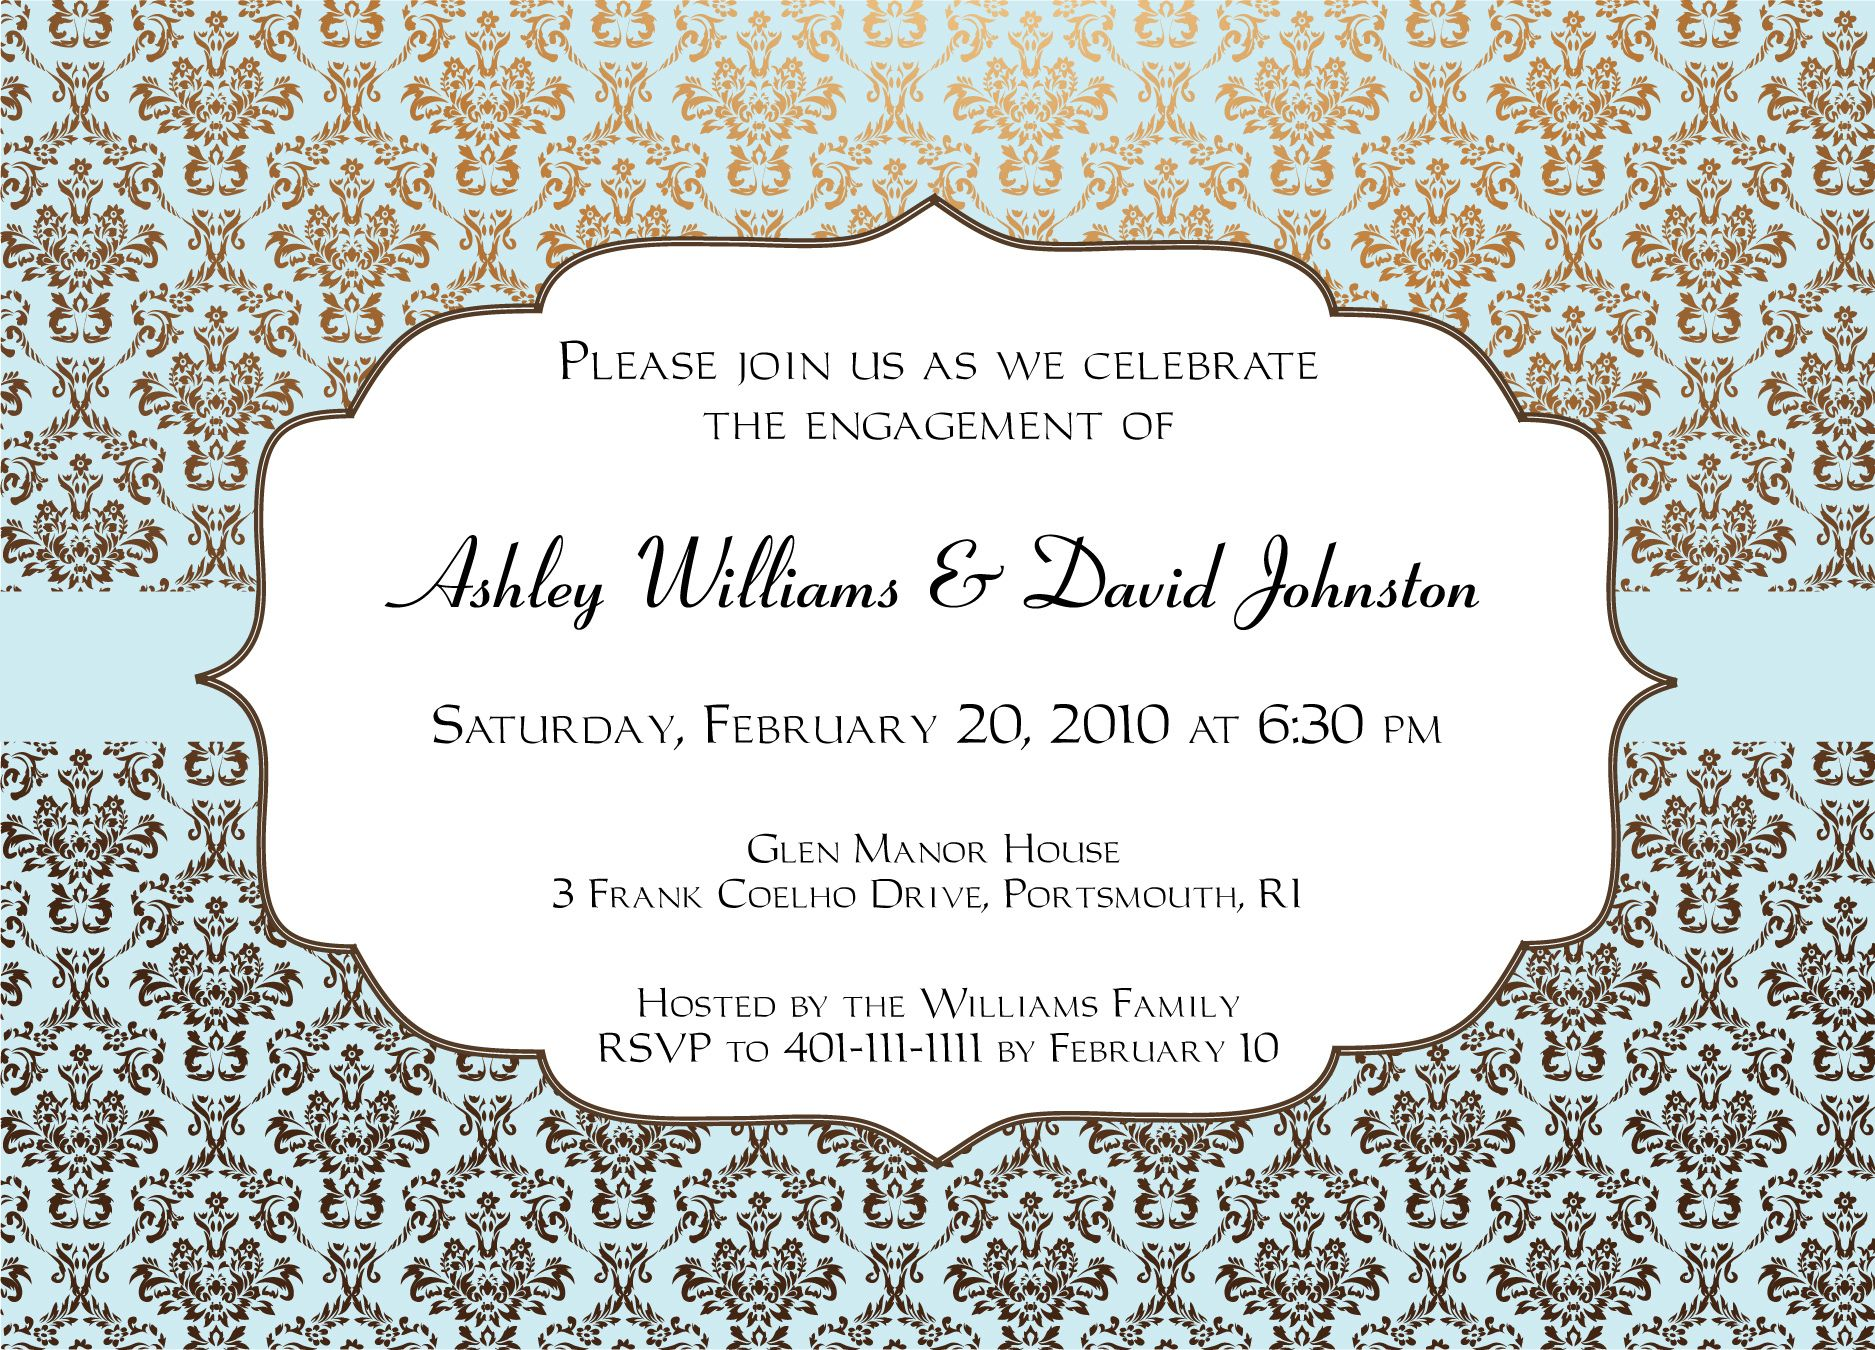 Engagement Party Invitations Templates | ... Invitation Templates  Engagement Invitation Design Invitation Templates  Invitation Template